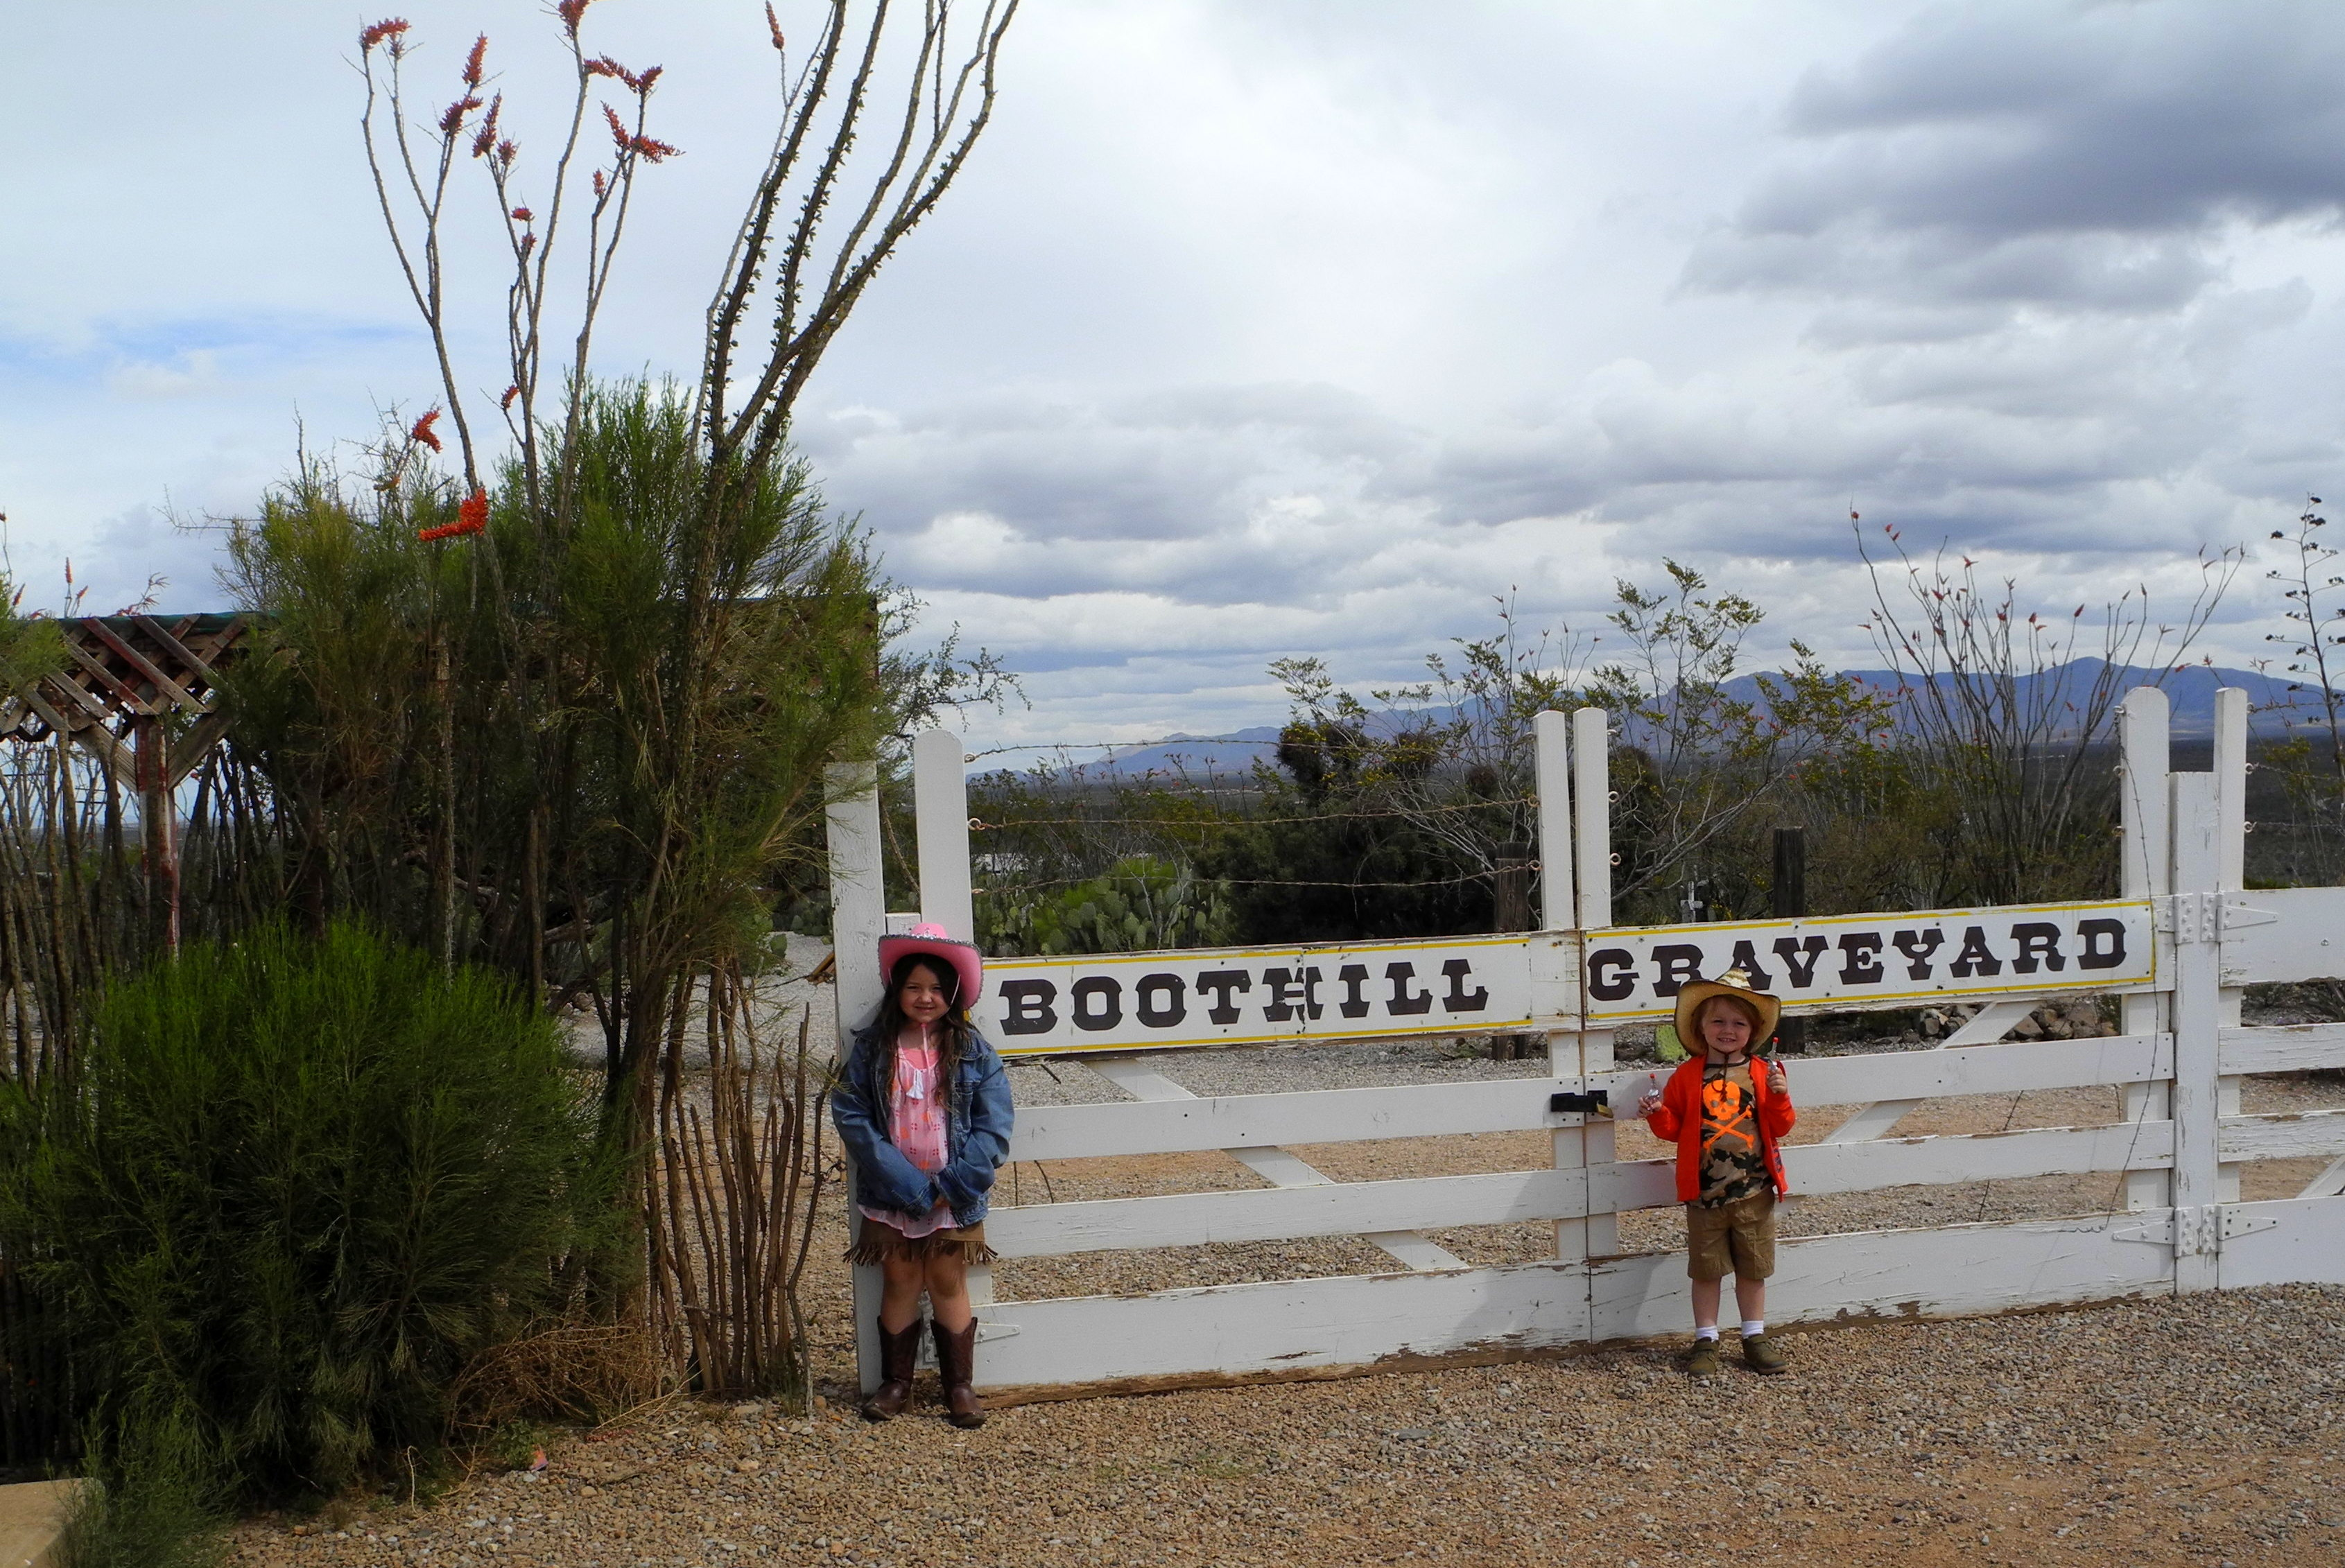 Kids at Boothill Graveyard in Tombstone